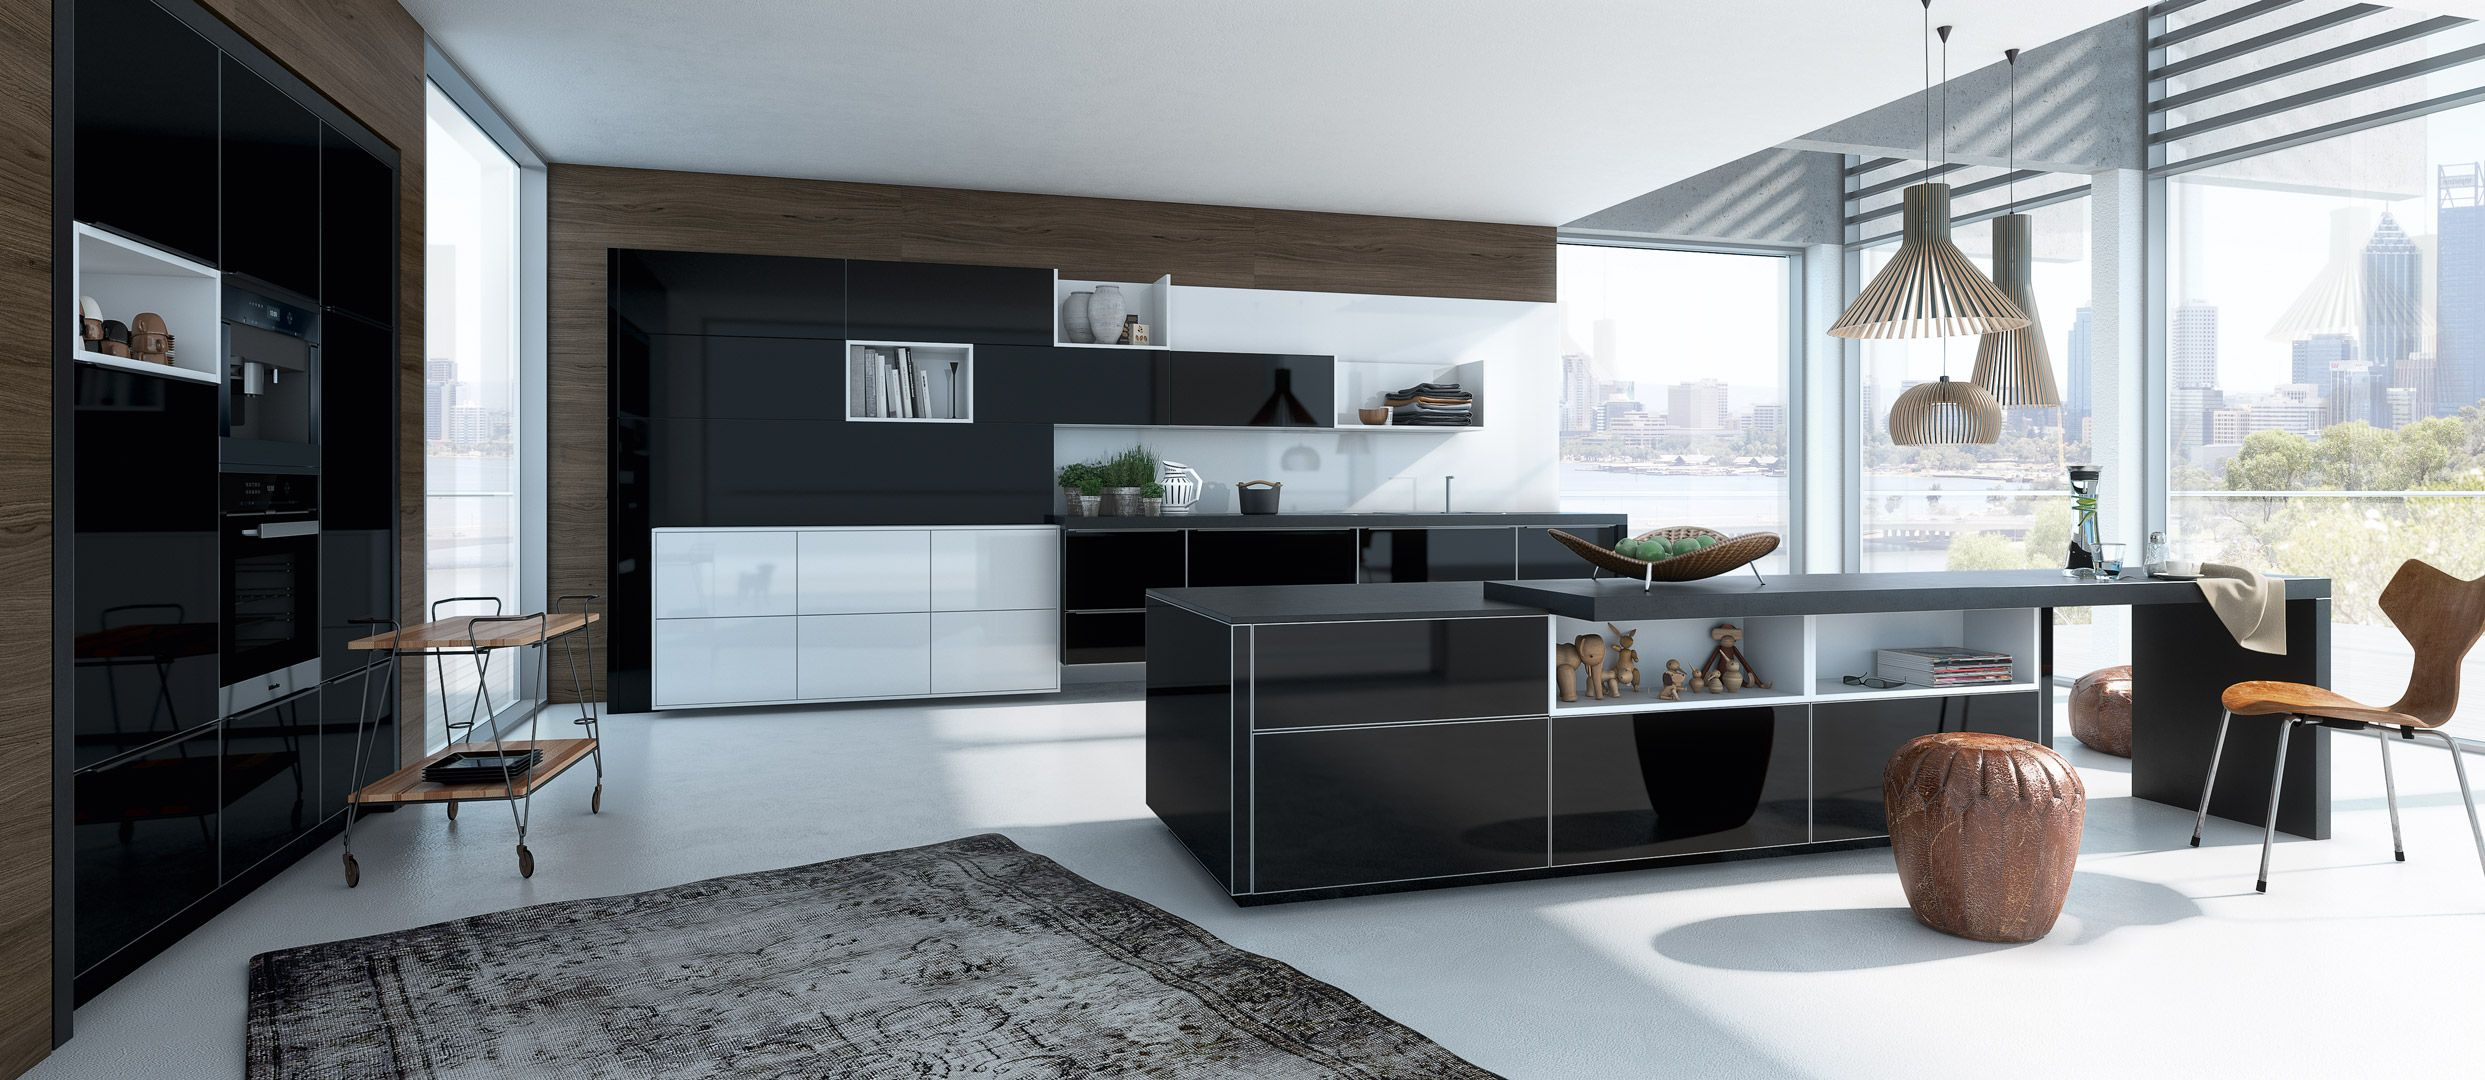 Fitted kitchens by alno sussex surrey london - Alno cucine catalogo ...